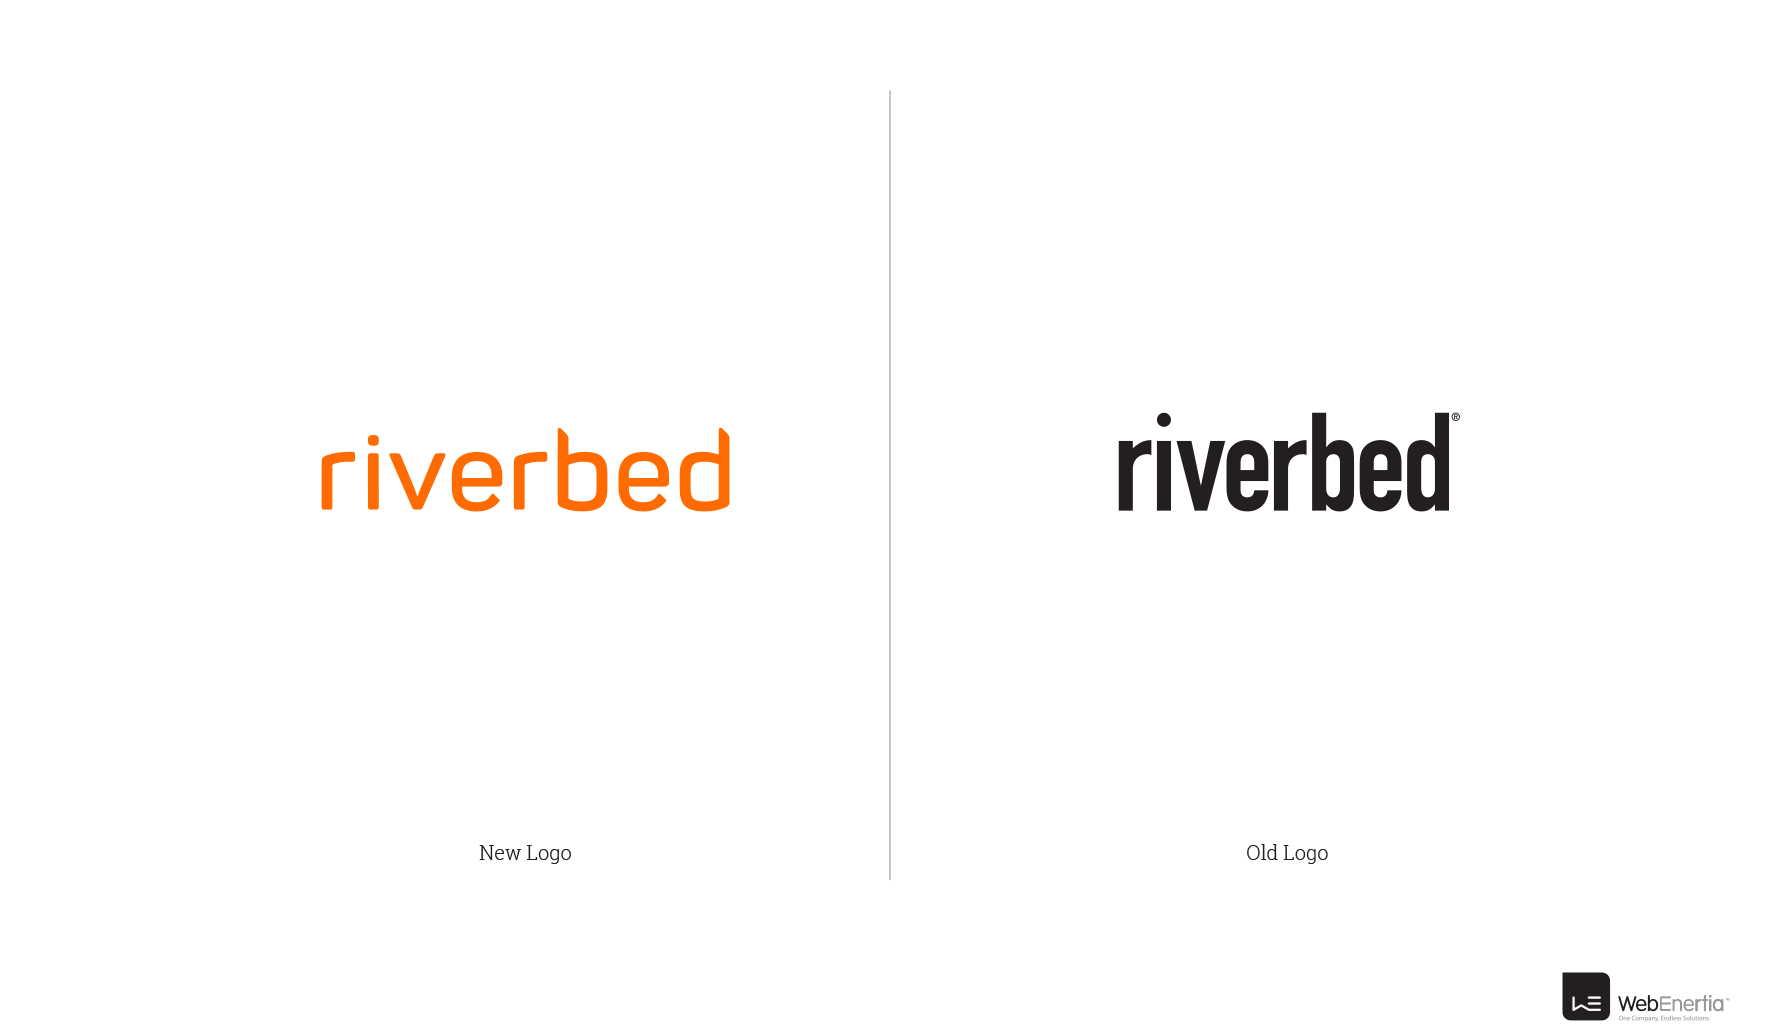 Riverbed Logo Redesign side-by-side comparison of new logo vs old logo